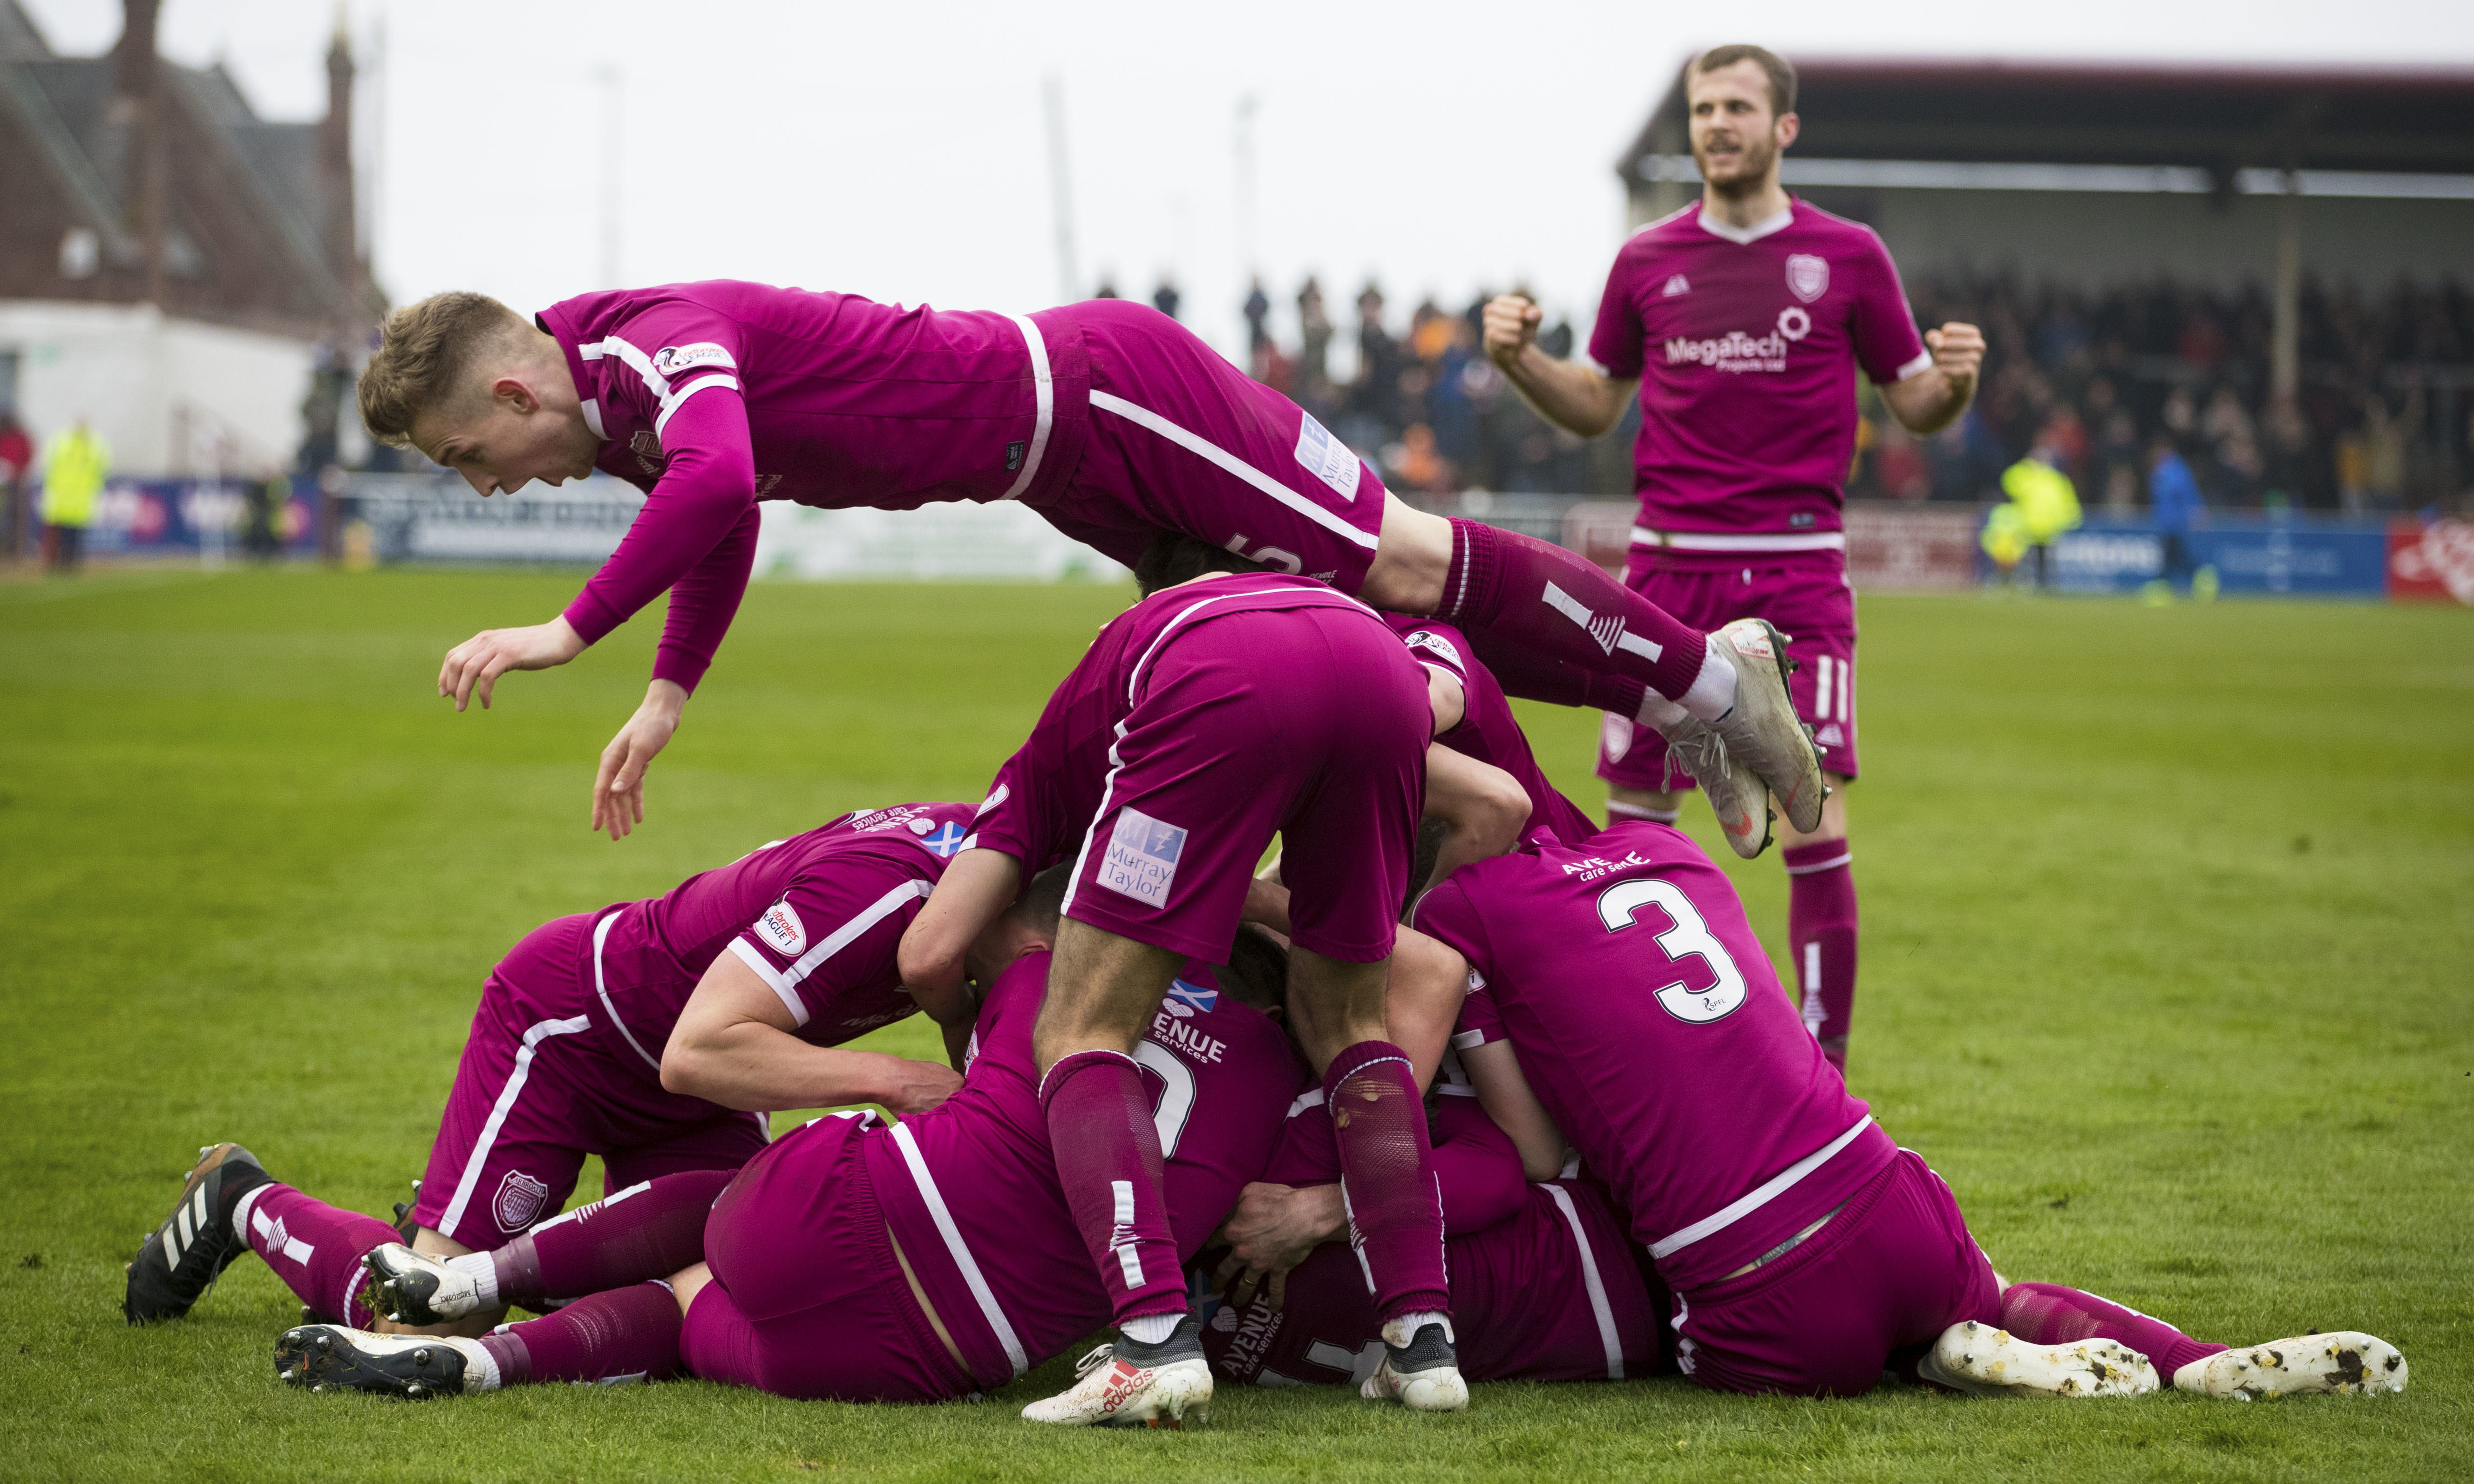 The Arbroath players celebrate Ricky Little's goal.